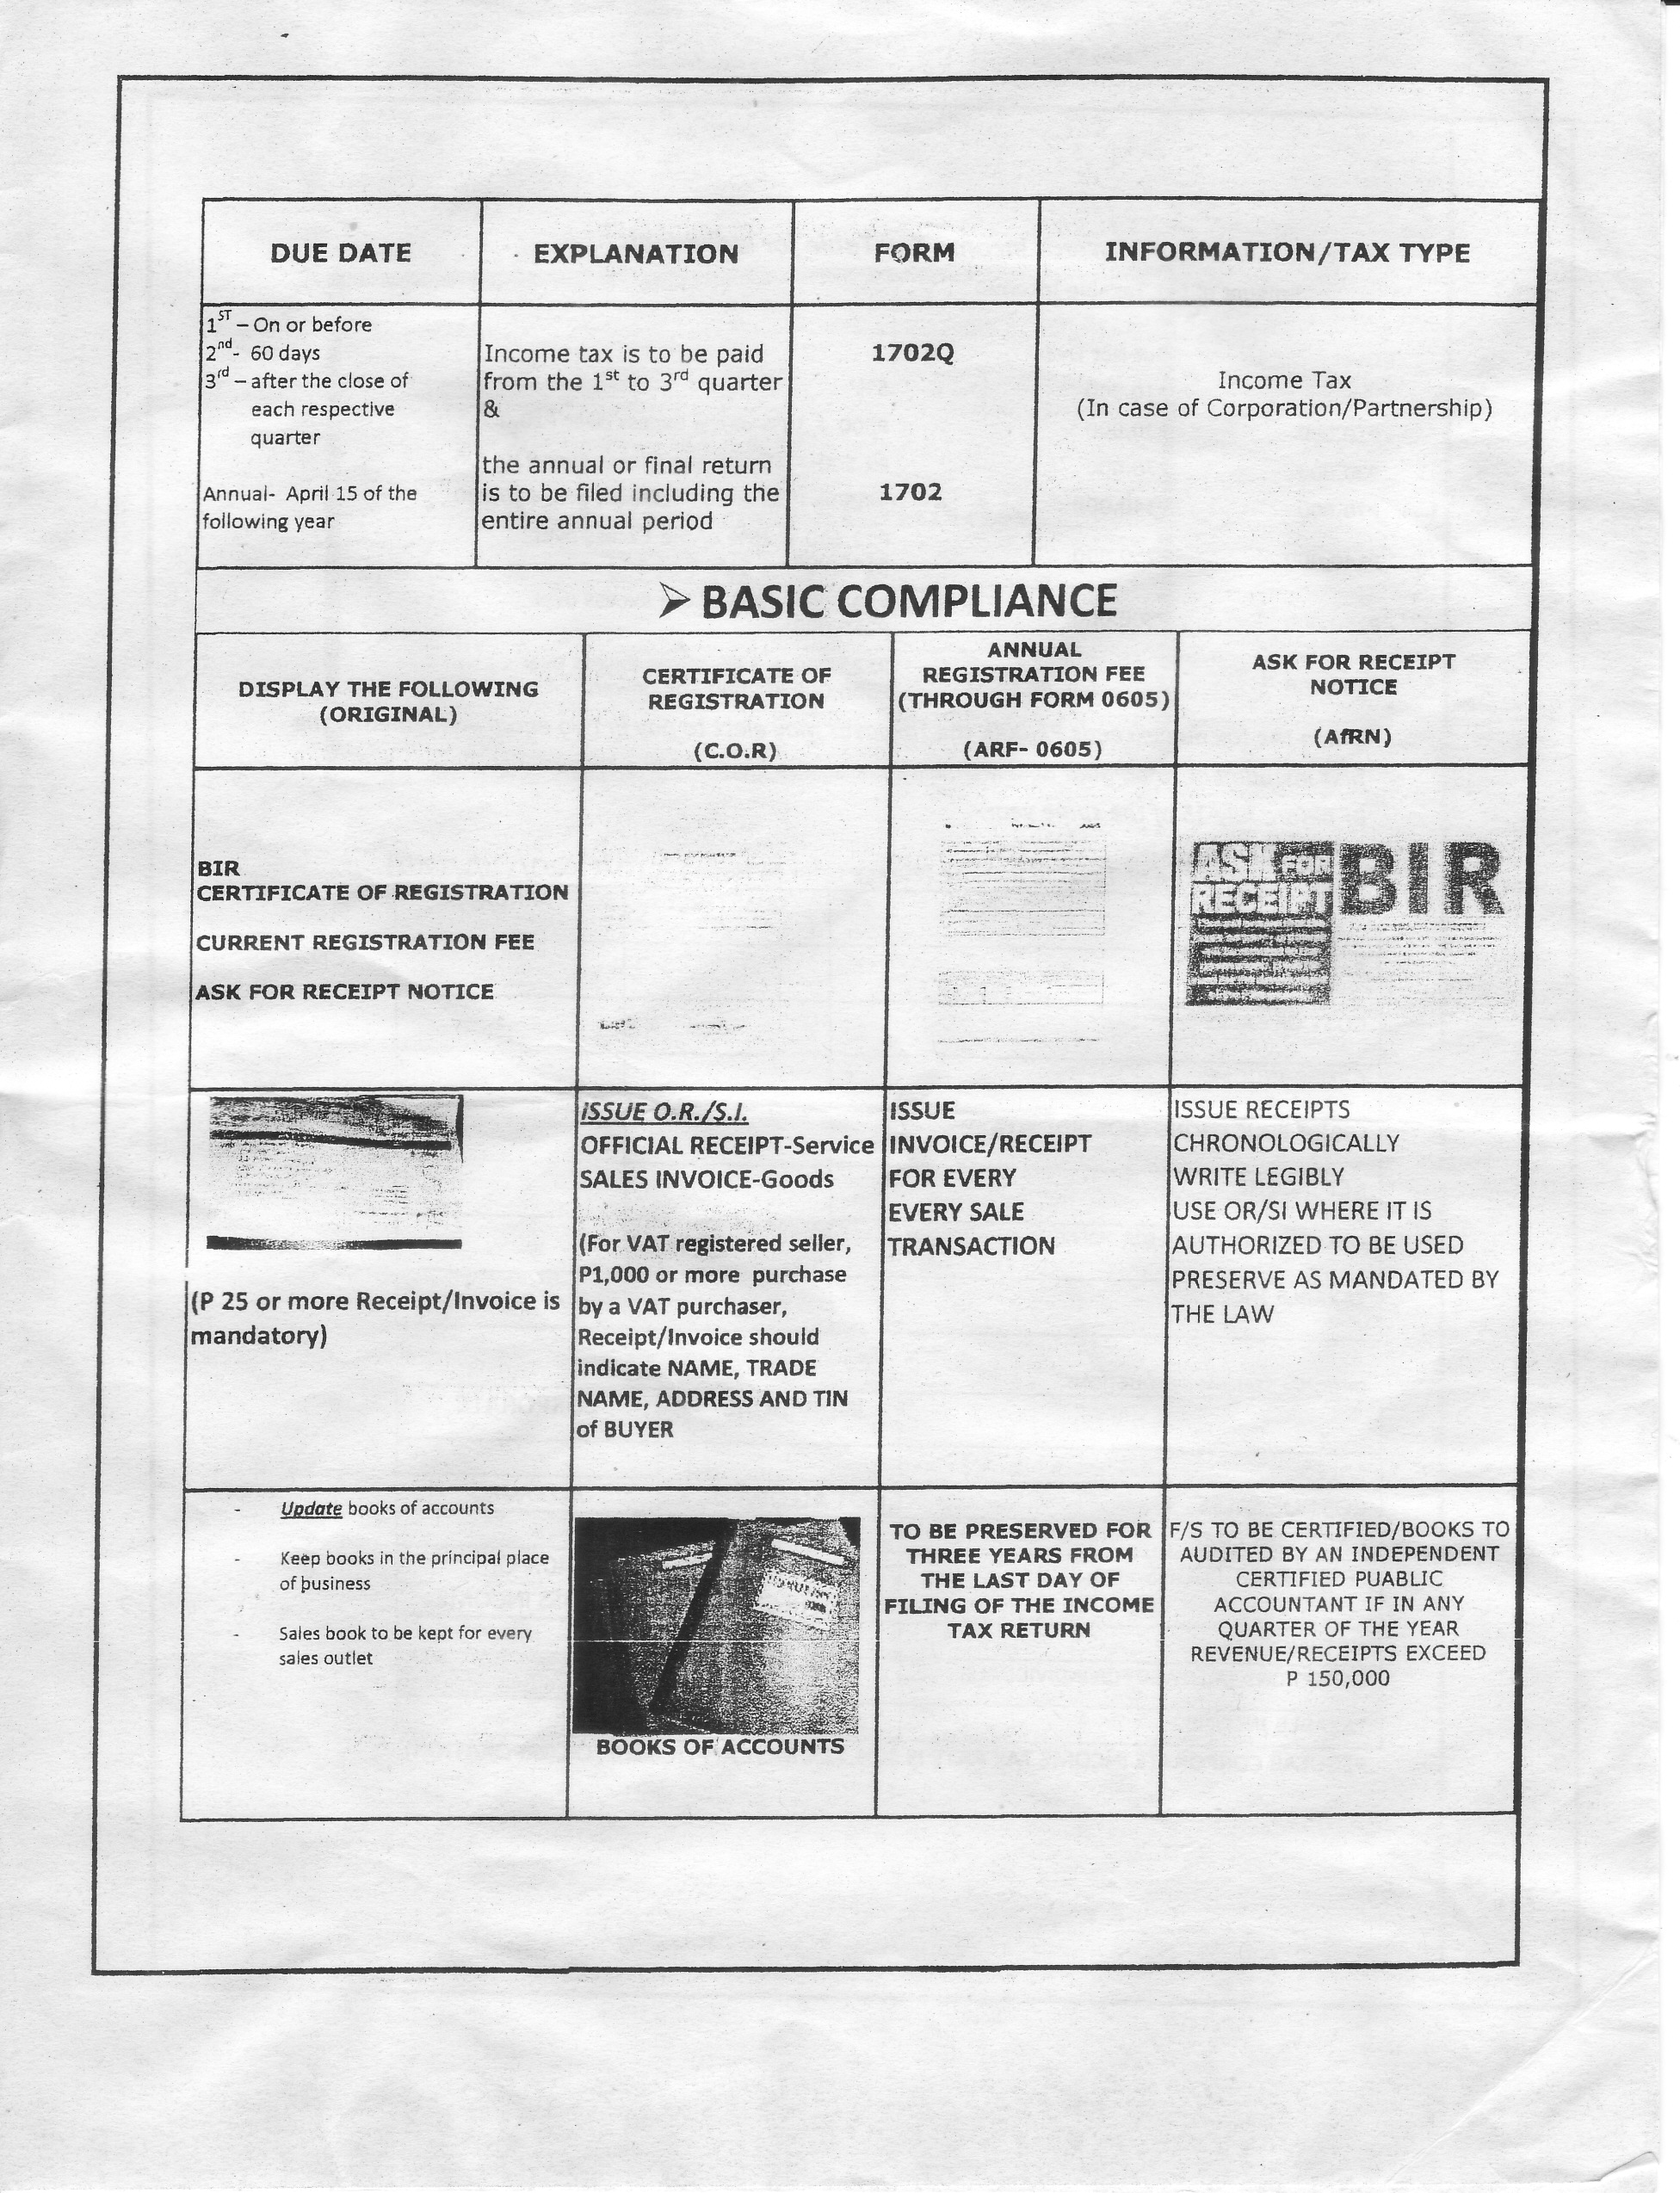 NEW FORM FOR CHANGE OF RDO